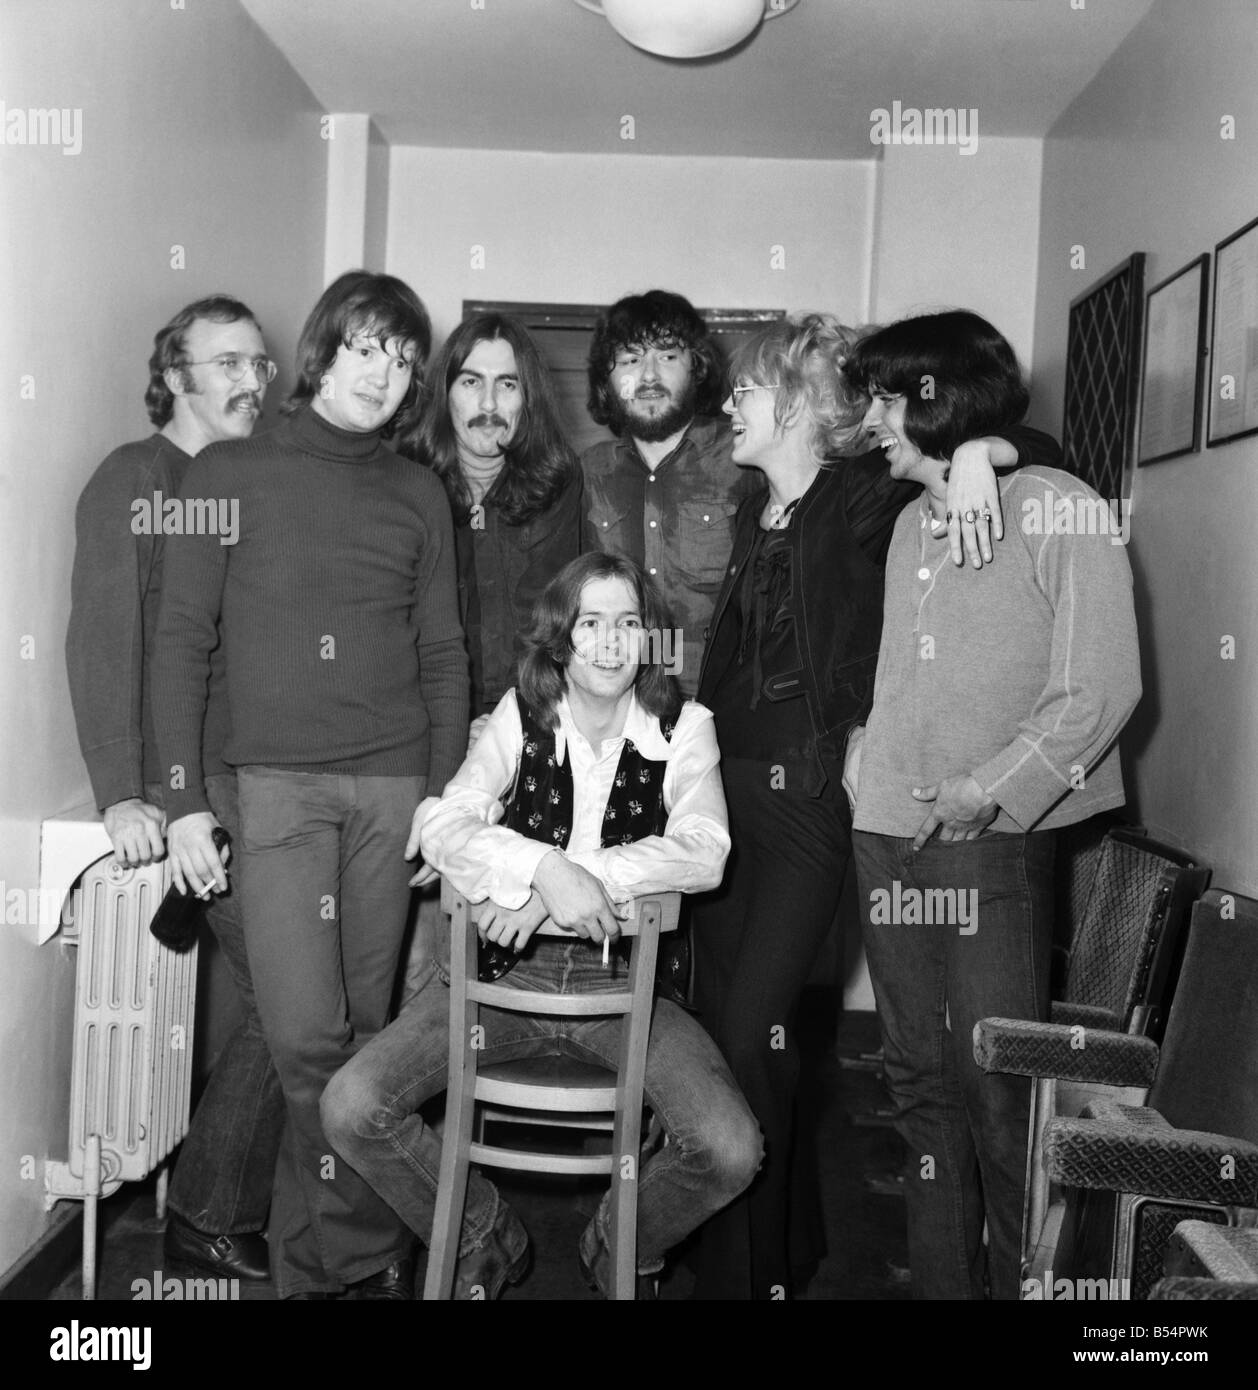 Entertainment: Pop Music: Beatle George Harrison with Pop group Delaney and Bonny and the friends. Picture at Colston - Stock Image